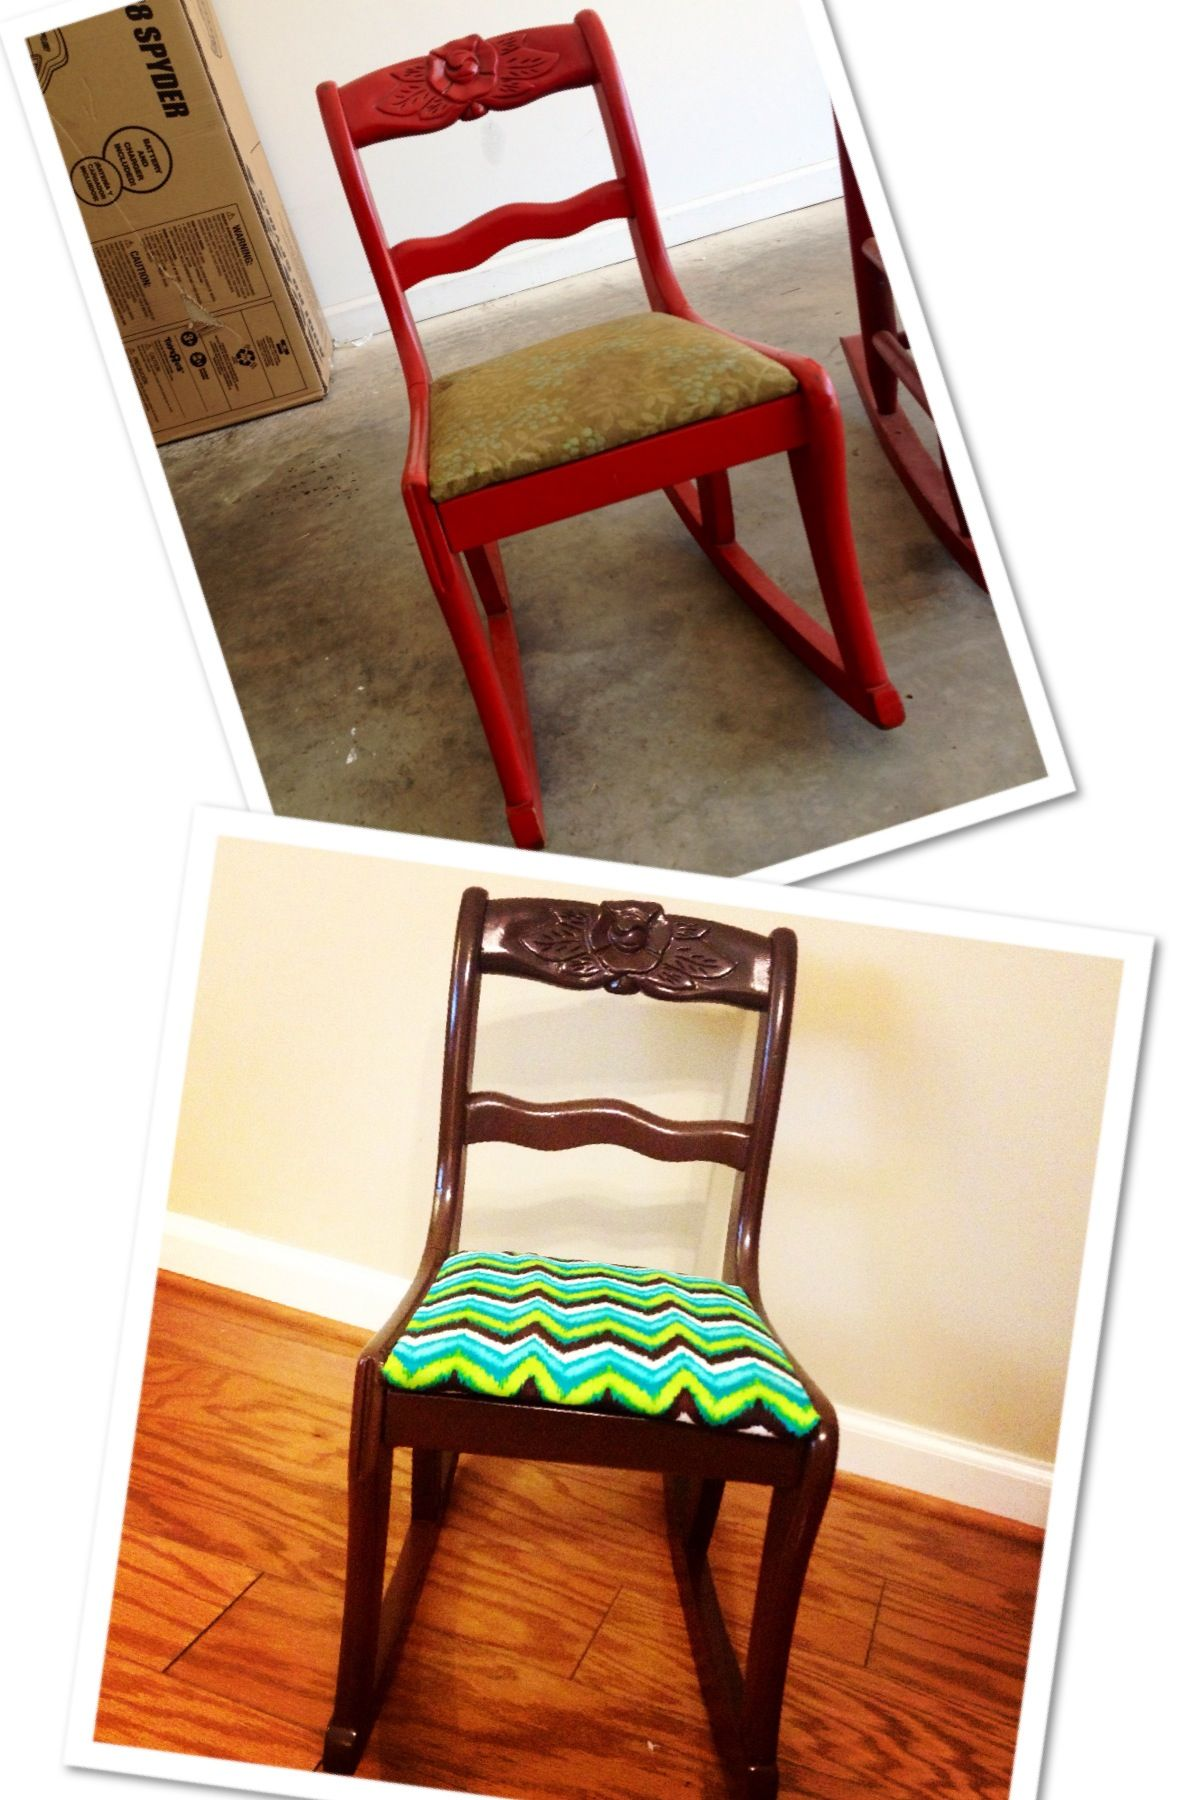 1000 images about furniture ideas yeah yeahhhh on pinterest dressers refurbished chairs and astonishing pinterest refurbished furniture photo